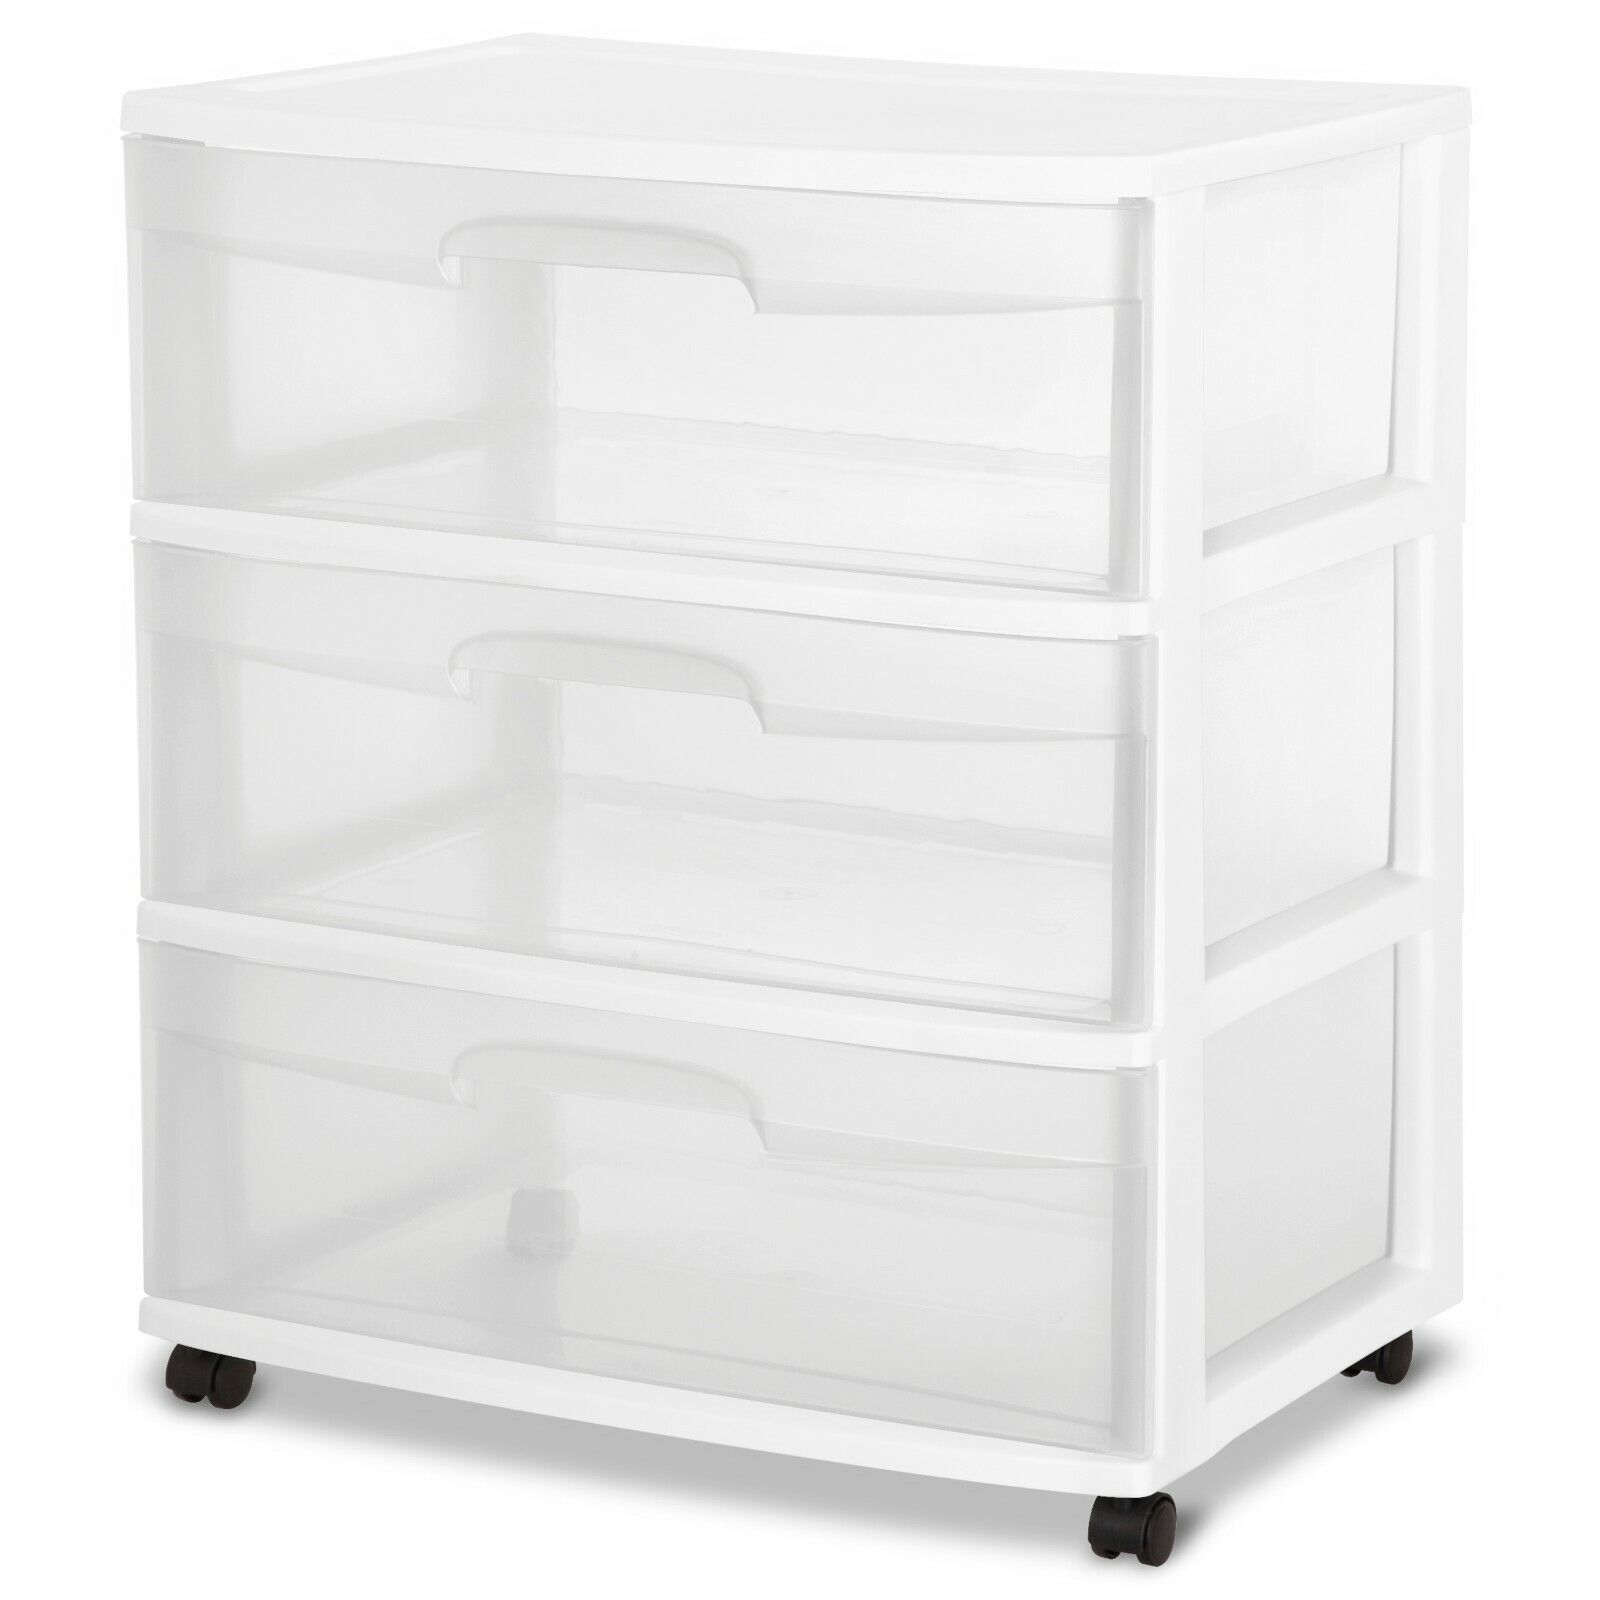 3 drawer plastic storage rolling cabinet file